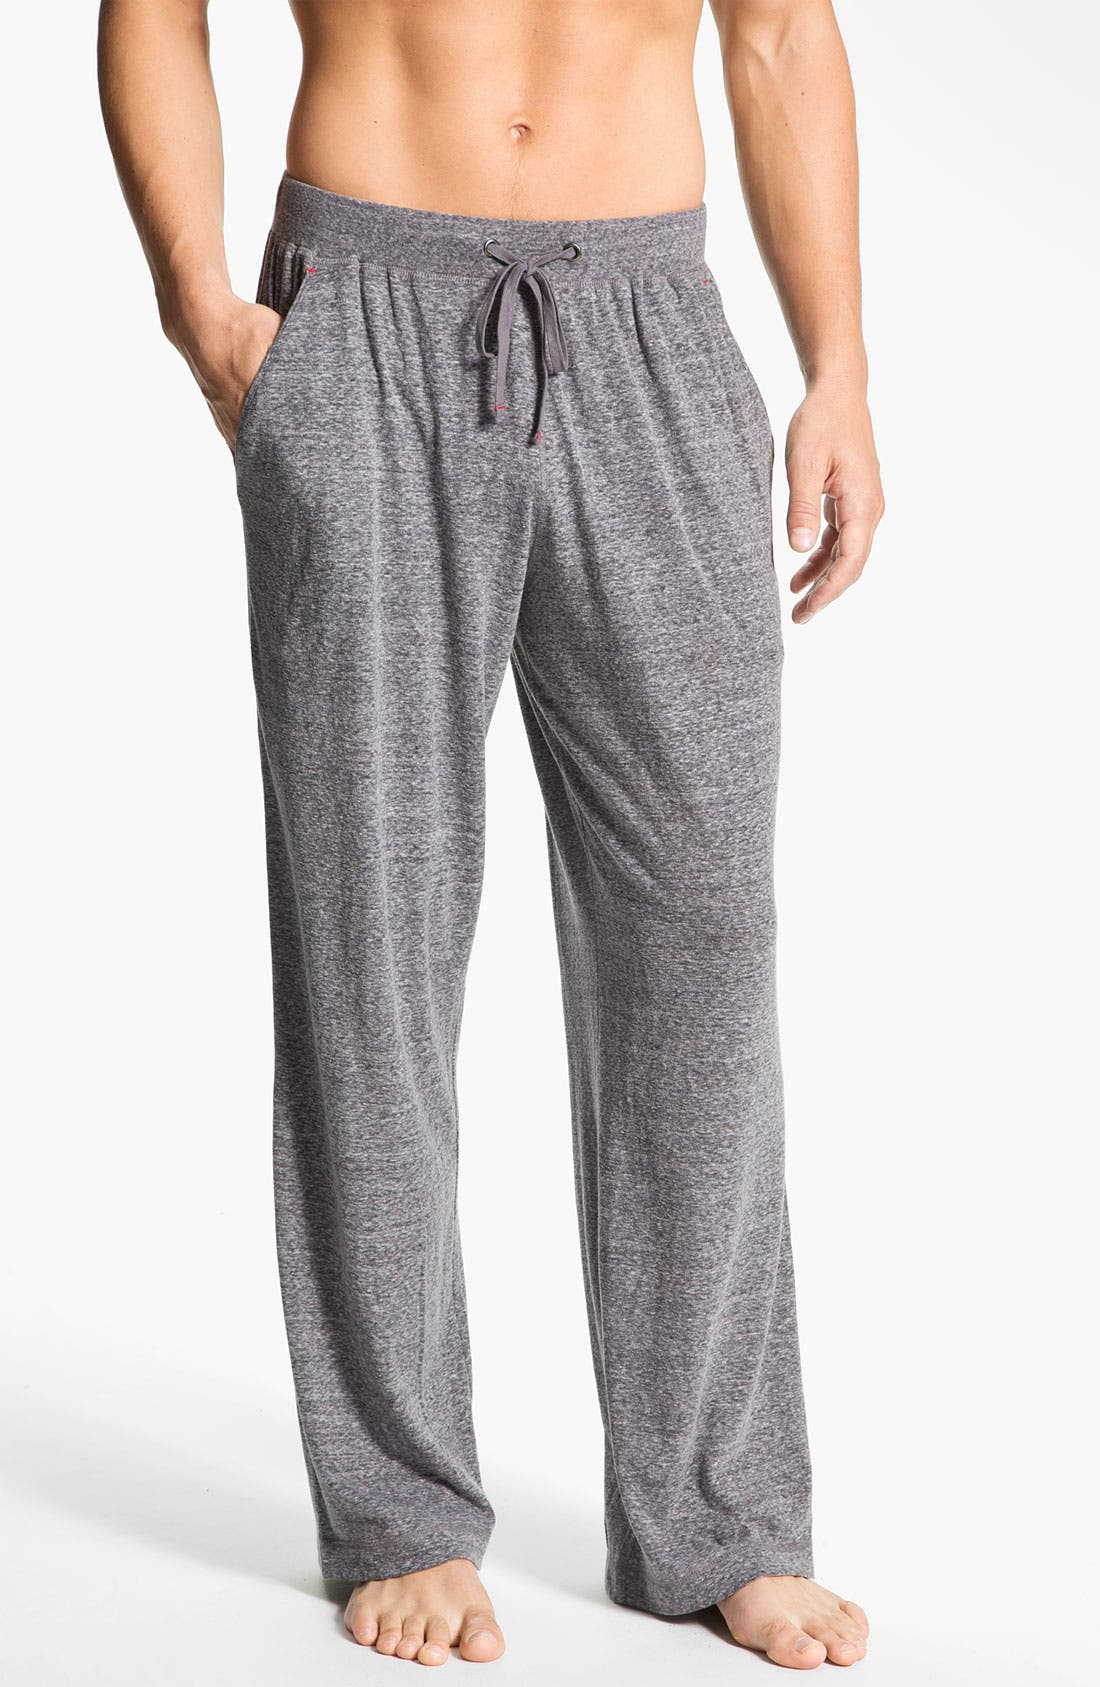 Alternate Image 1 Selected - Daniel Buchler Lightweight Heathered Cotton Blend Lounge Pants